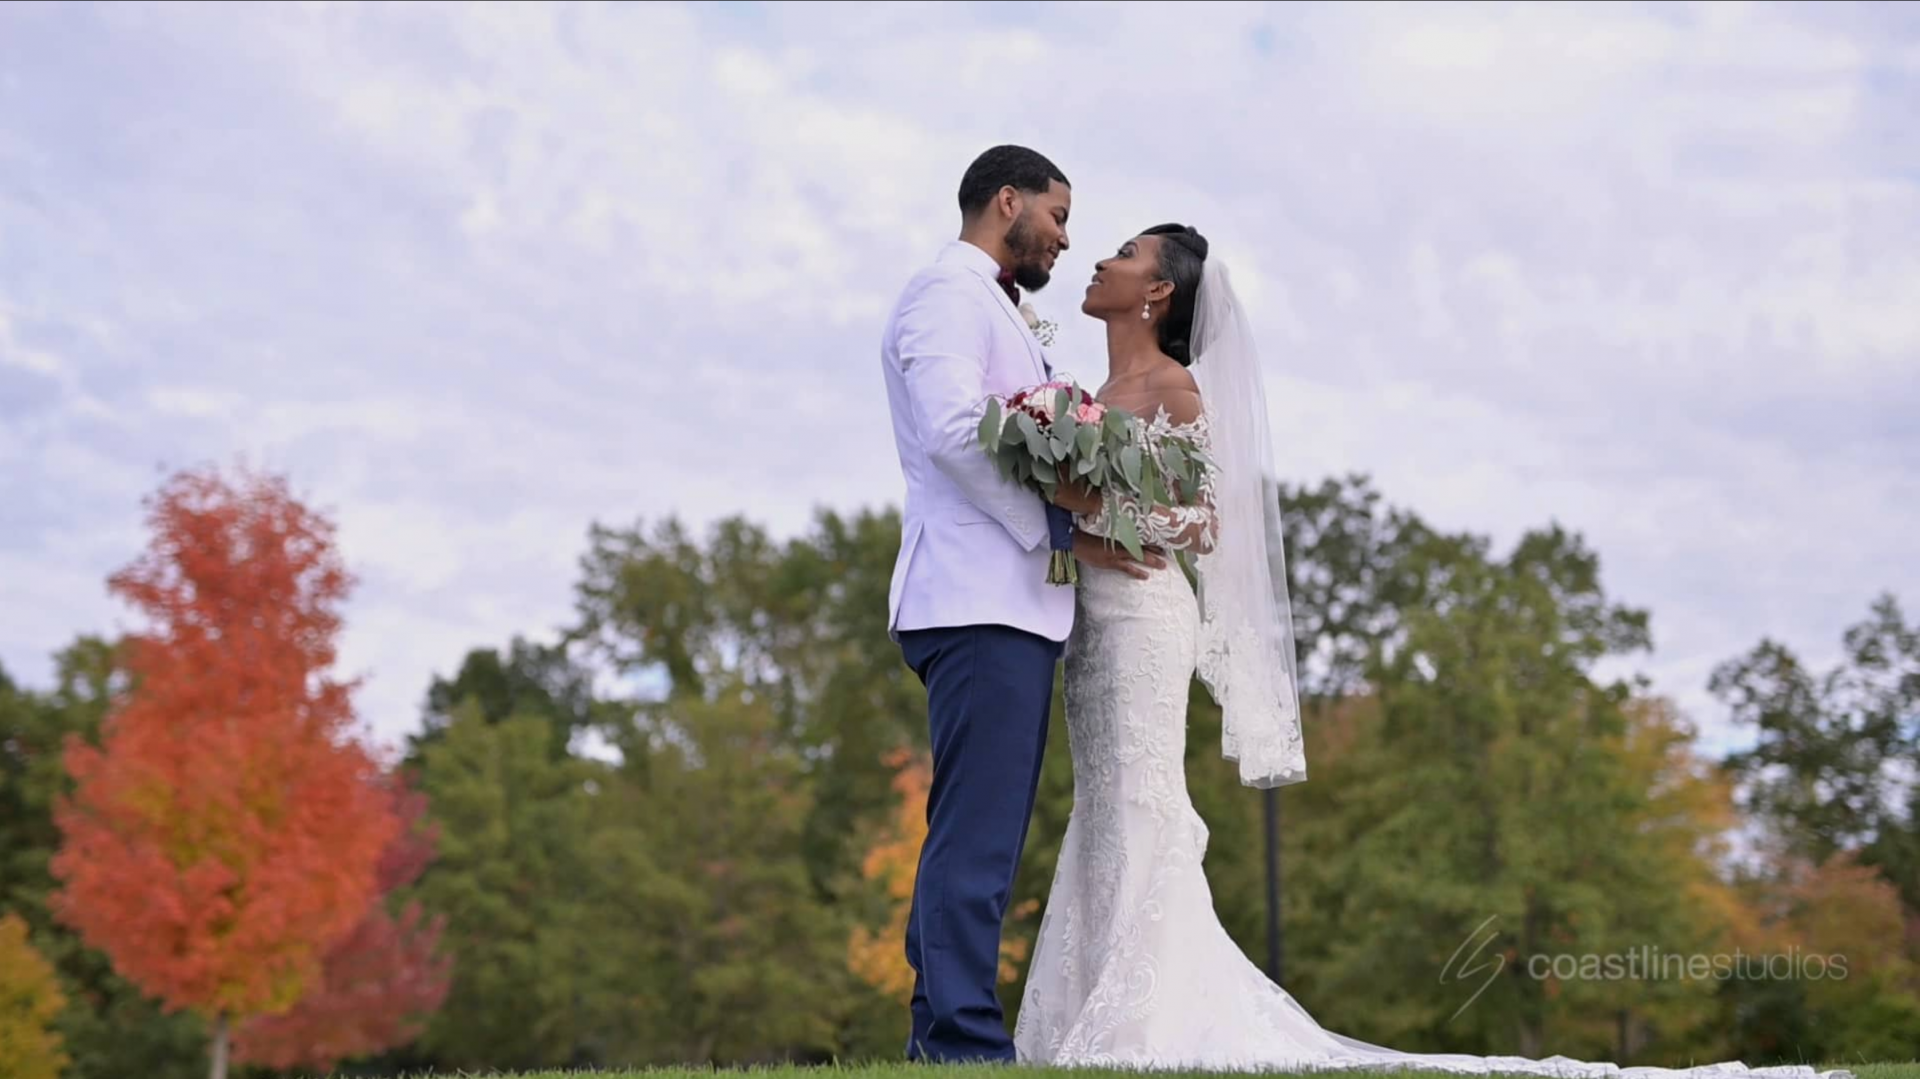 Jumping the Broom at Beautiful Fall Michigan Wedding